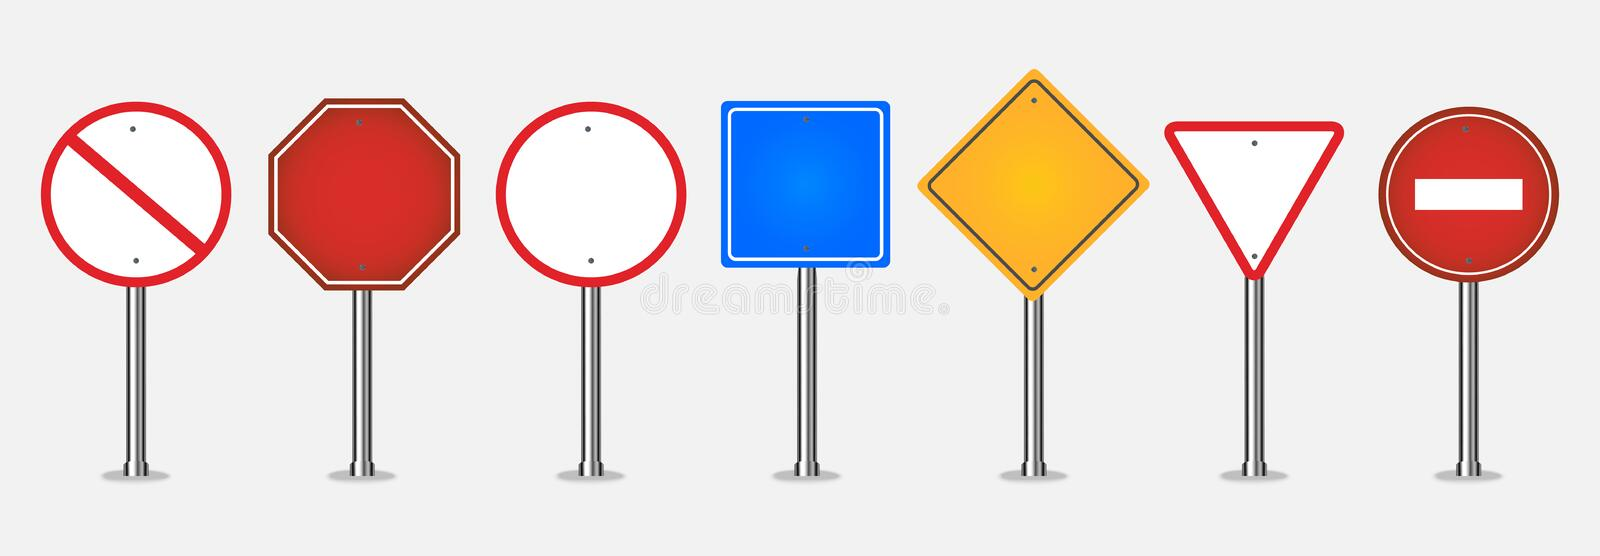 Big set of traffic signs royalty free illustration